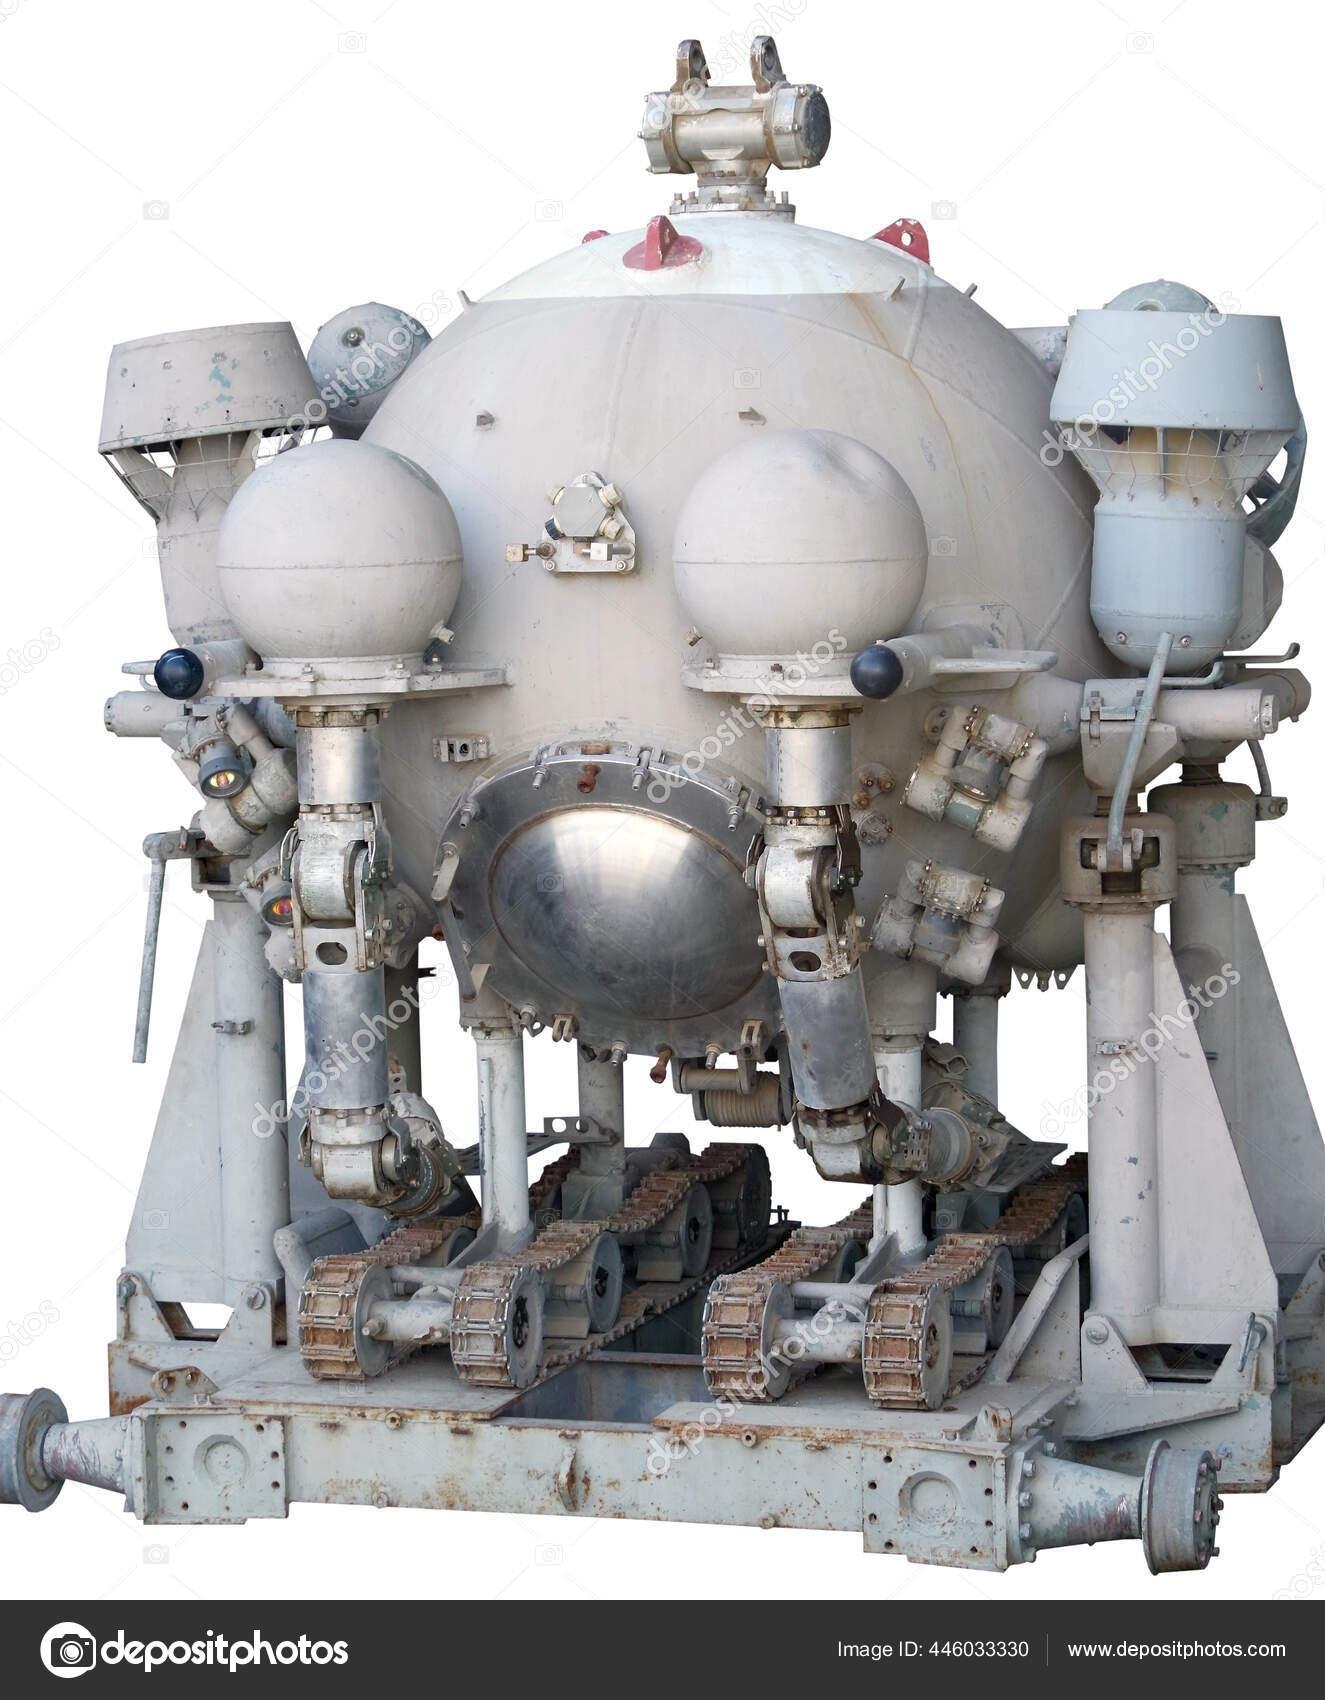 depositphotos_446033330-stock-photo-front-part-old-underwater-lander.jpg